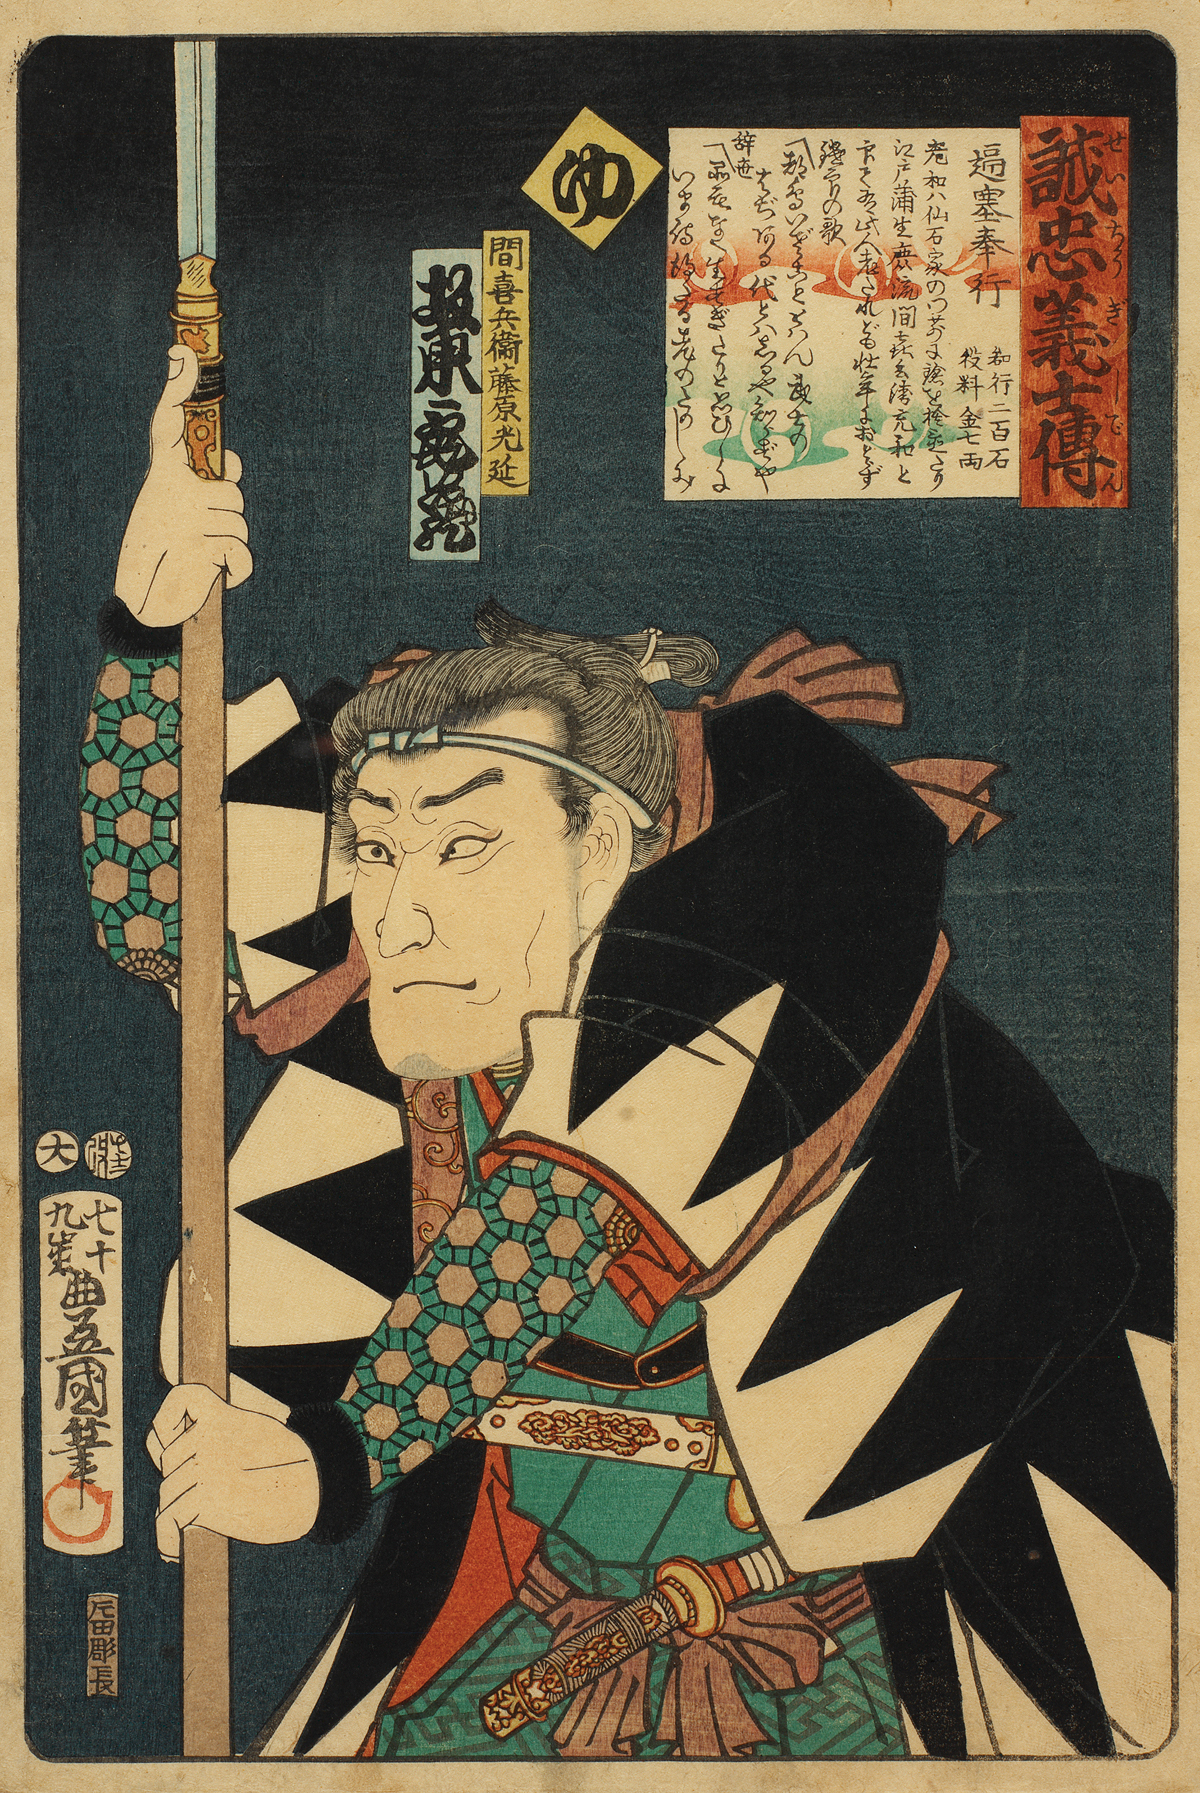 Japanese Woodcut Print Collection at Park West Gallery